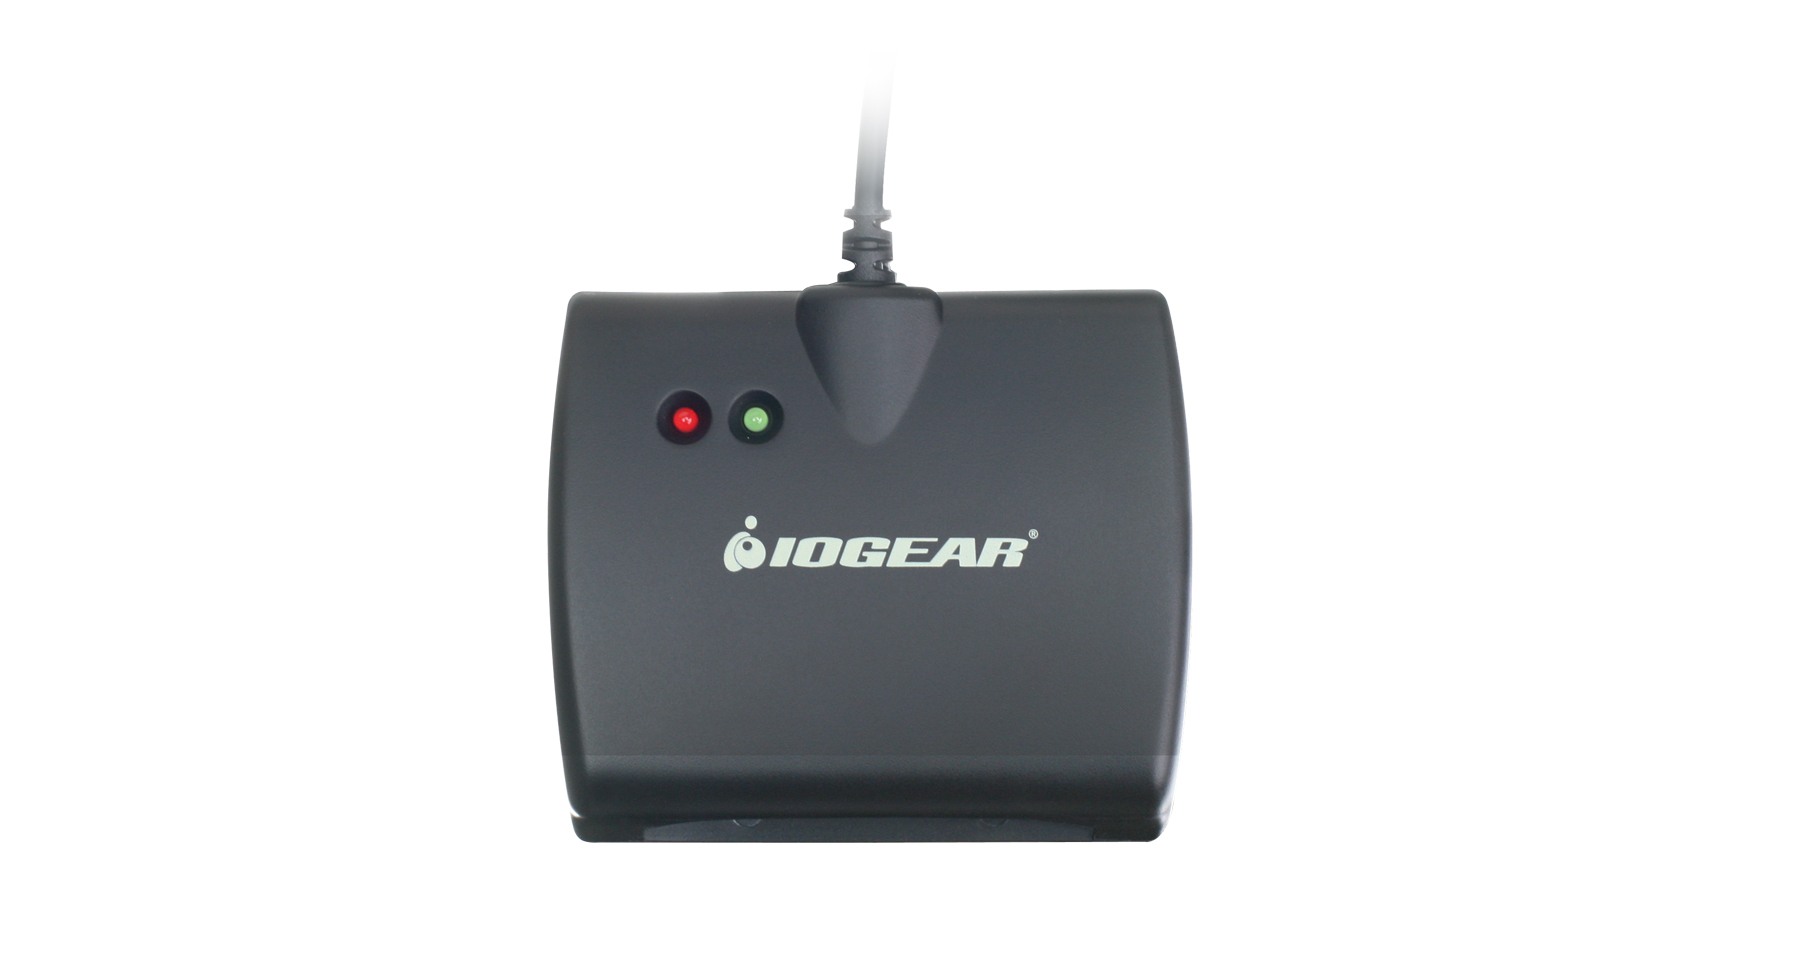 Iogear gsr202 usb smart card access reader drivers.